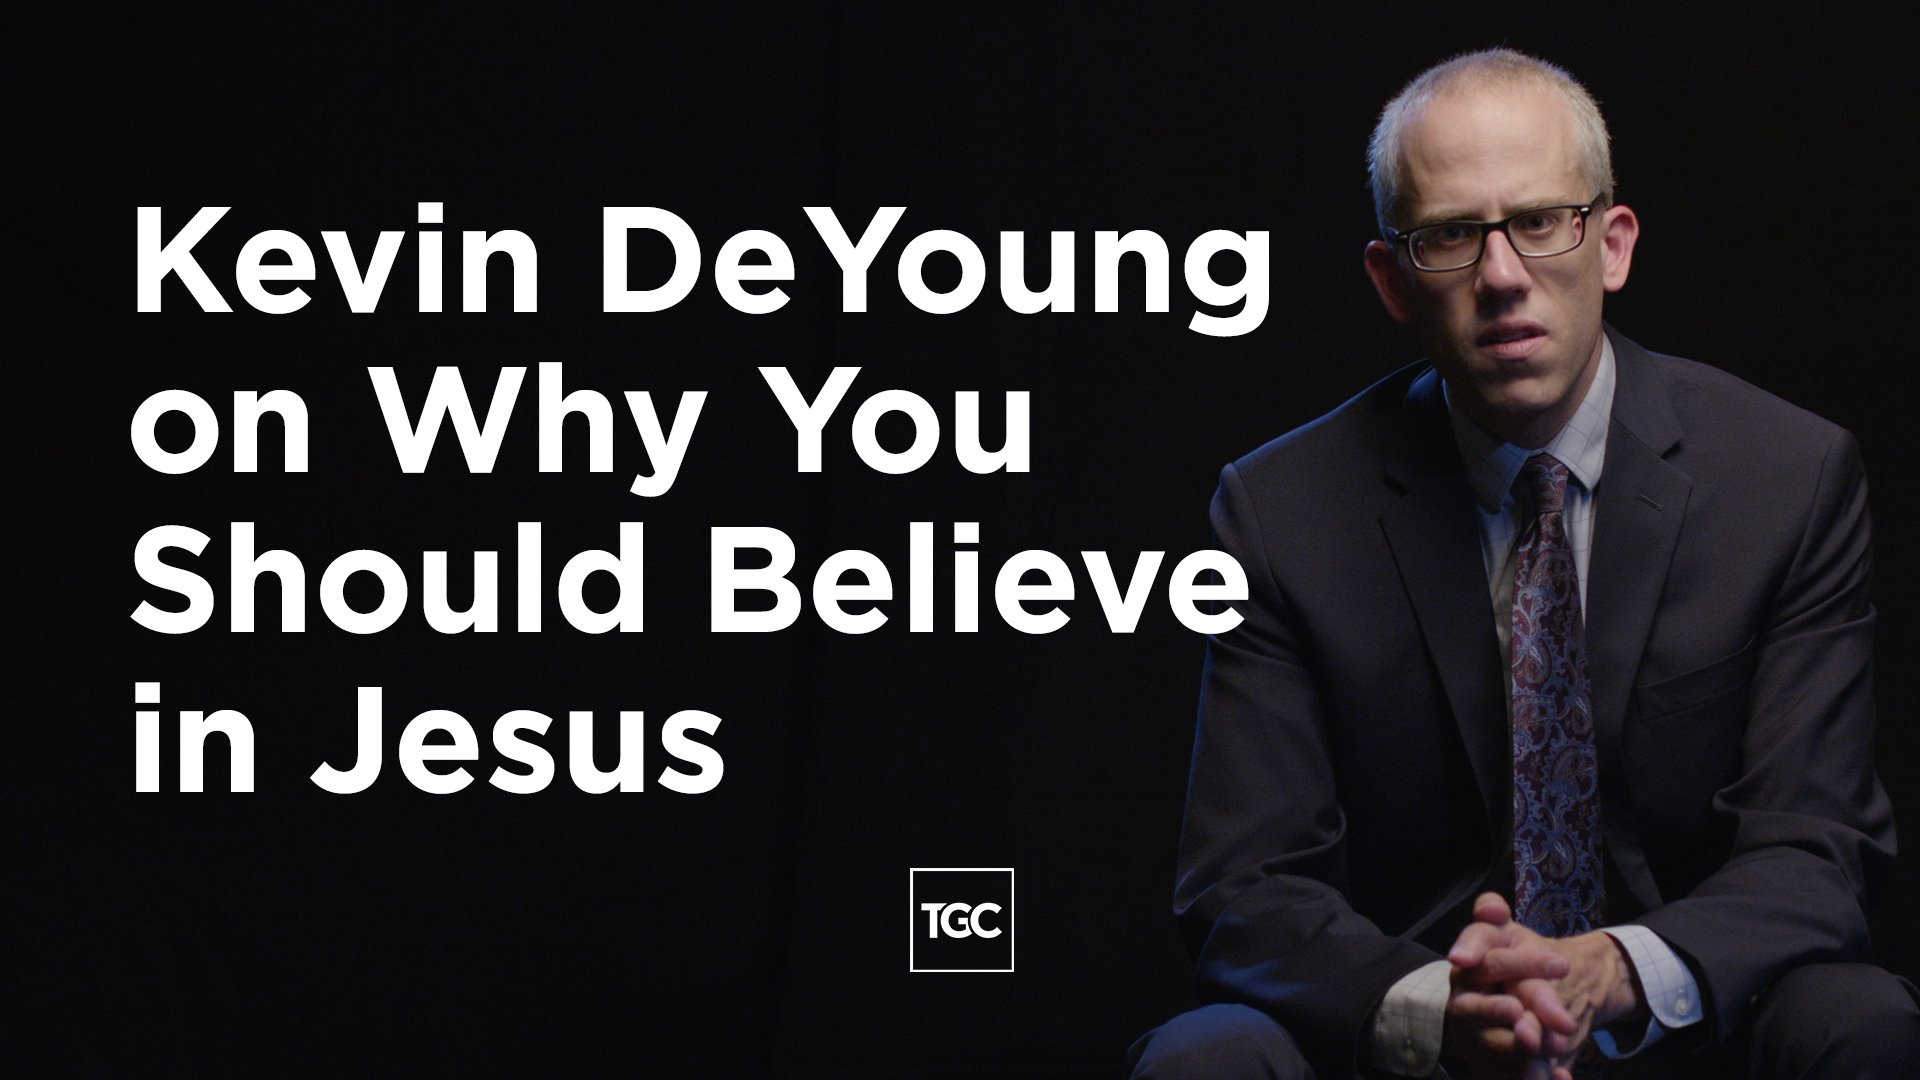 New video: @RevKevDeYoung points out that Jesus is both a historical fact and a present source of hope. https://t.co/naok1RYdmQ